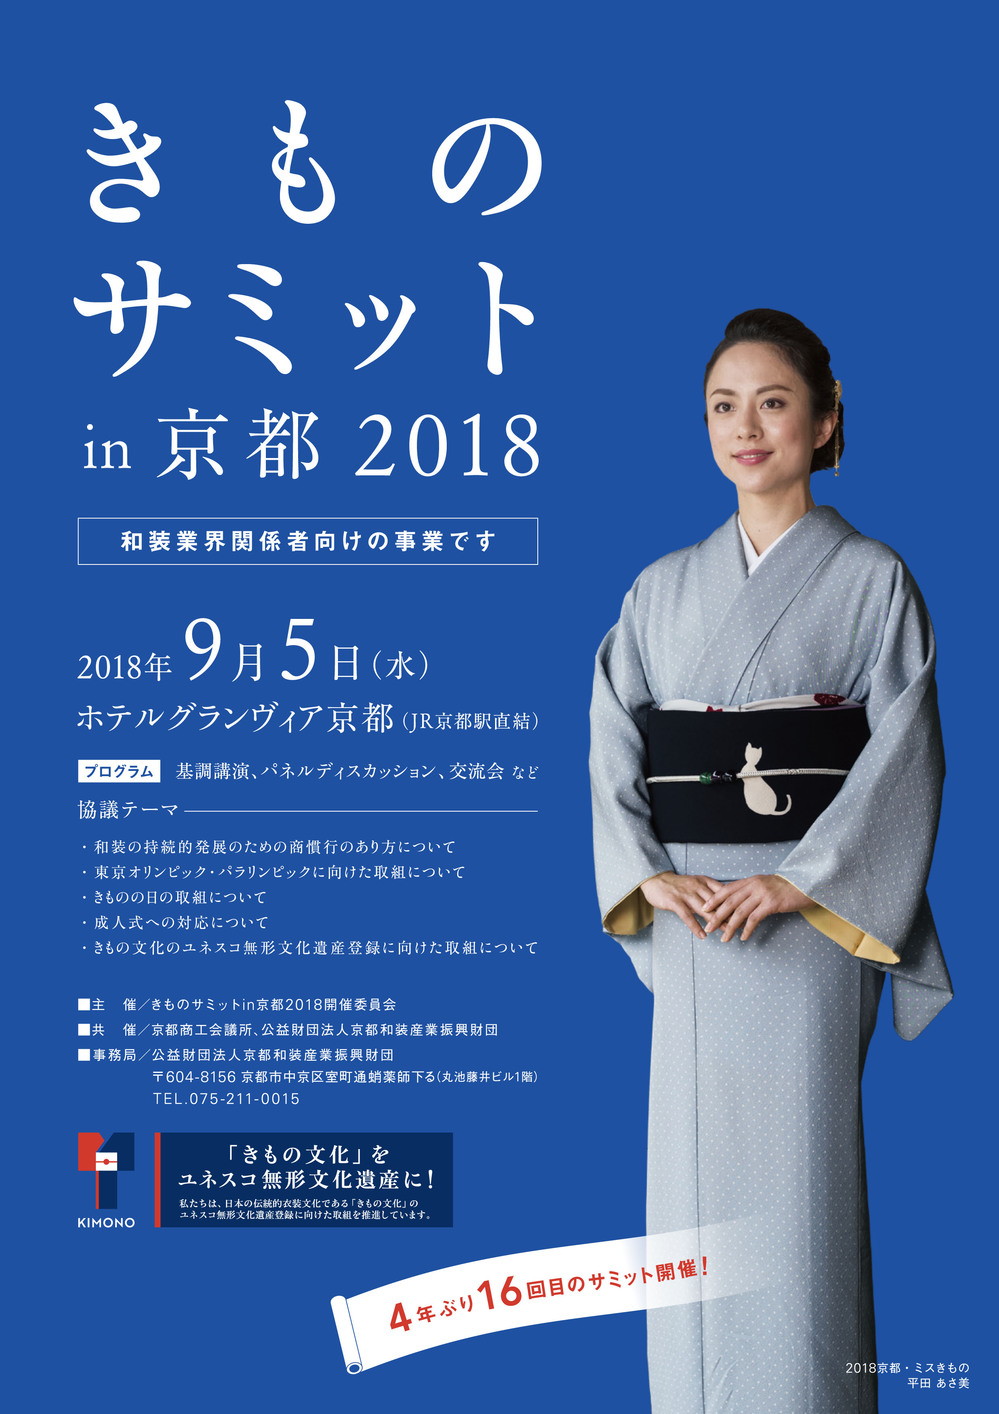 http://www.fashion-kyoto.or.jp/event/img/assets_c/2018/06/kimono%20summit-thumb-autox1414-4144.jpg